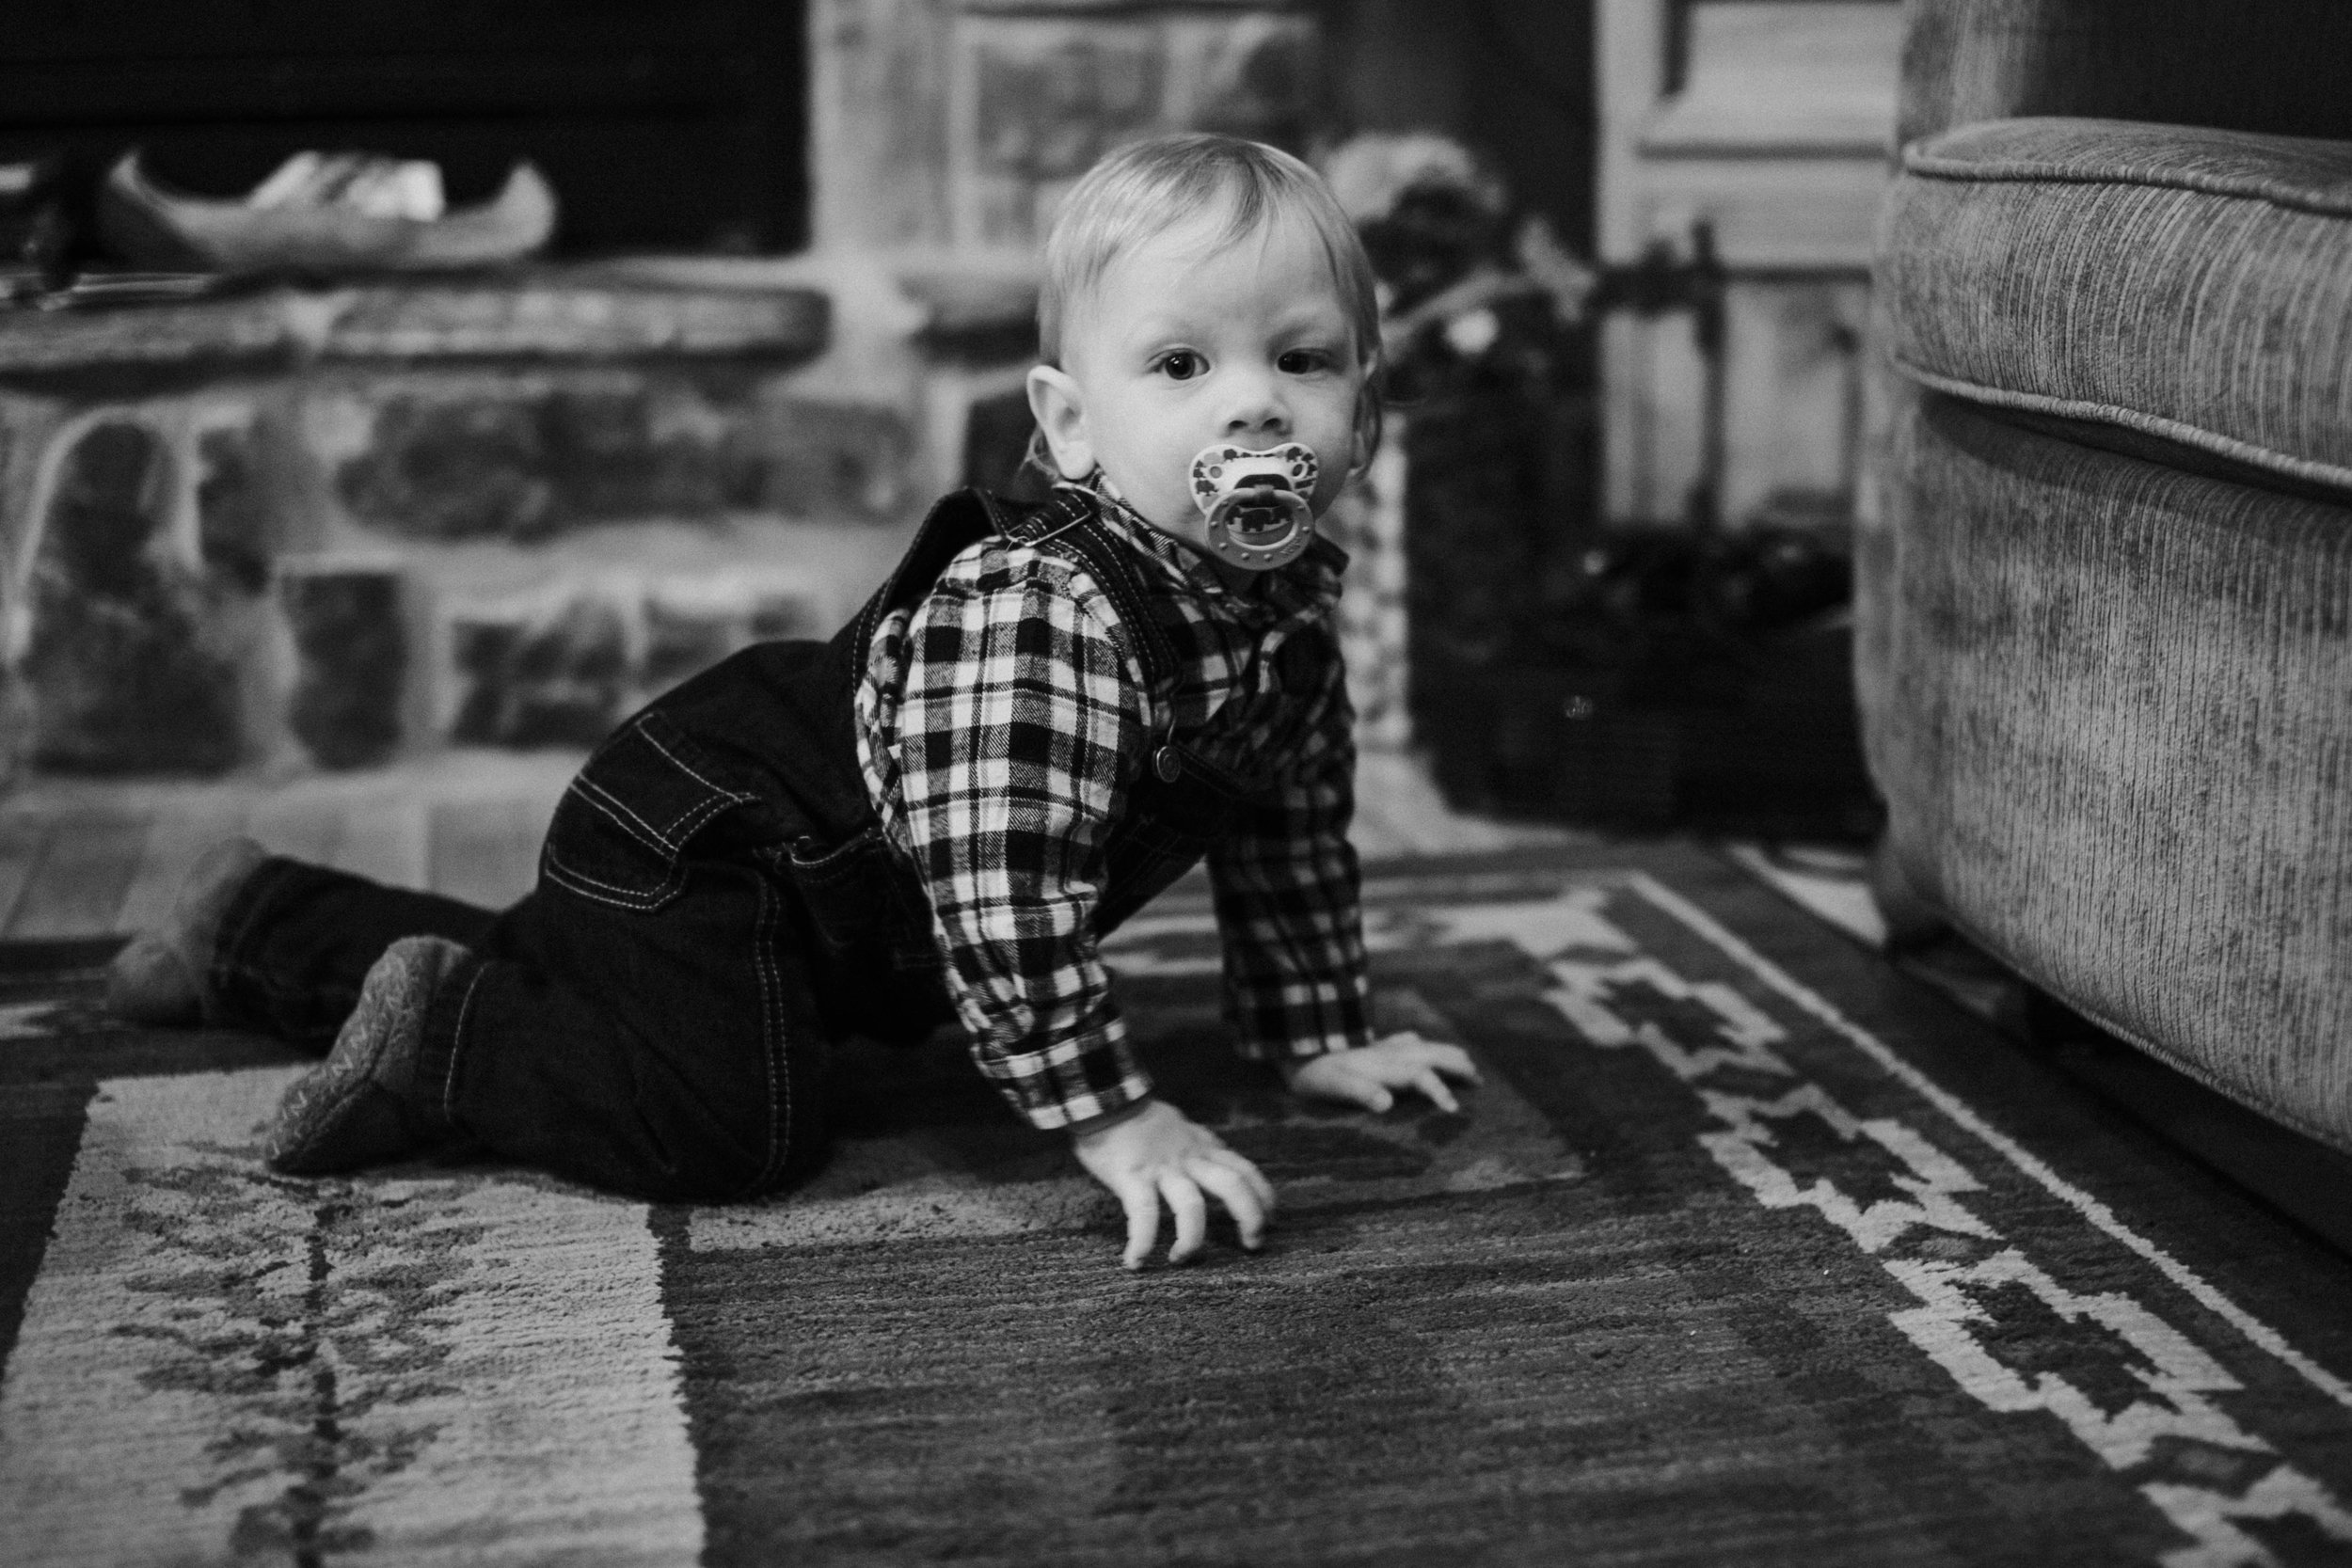 Christmas 2016 | Hannahill Photography | Branson, MO | Documentary Family Photography | a black and white portrait of my nephew learning to crawl